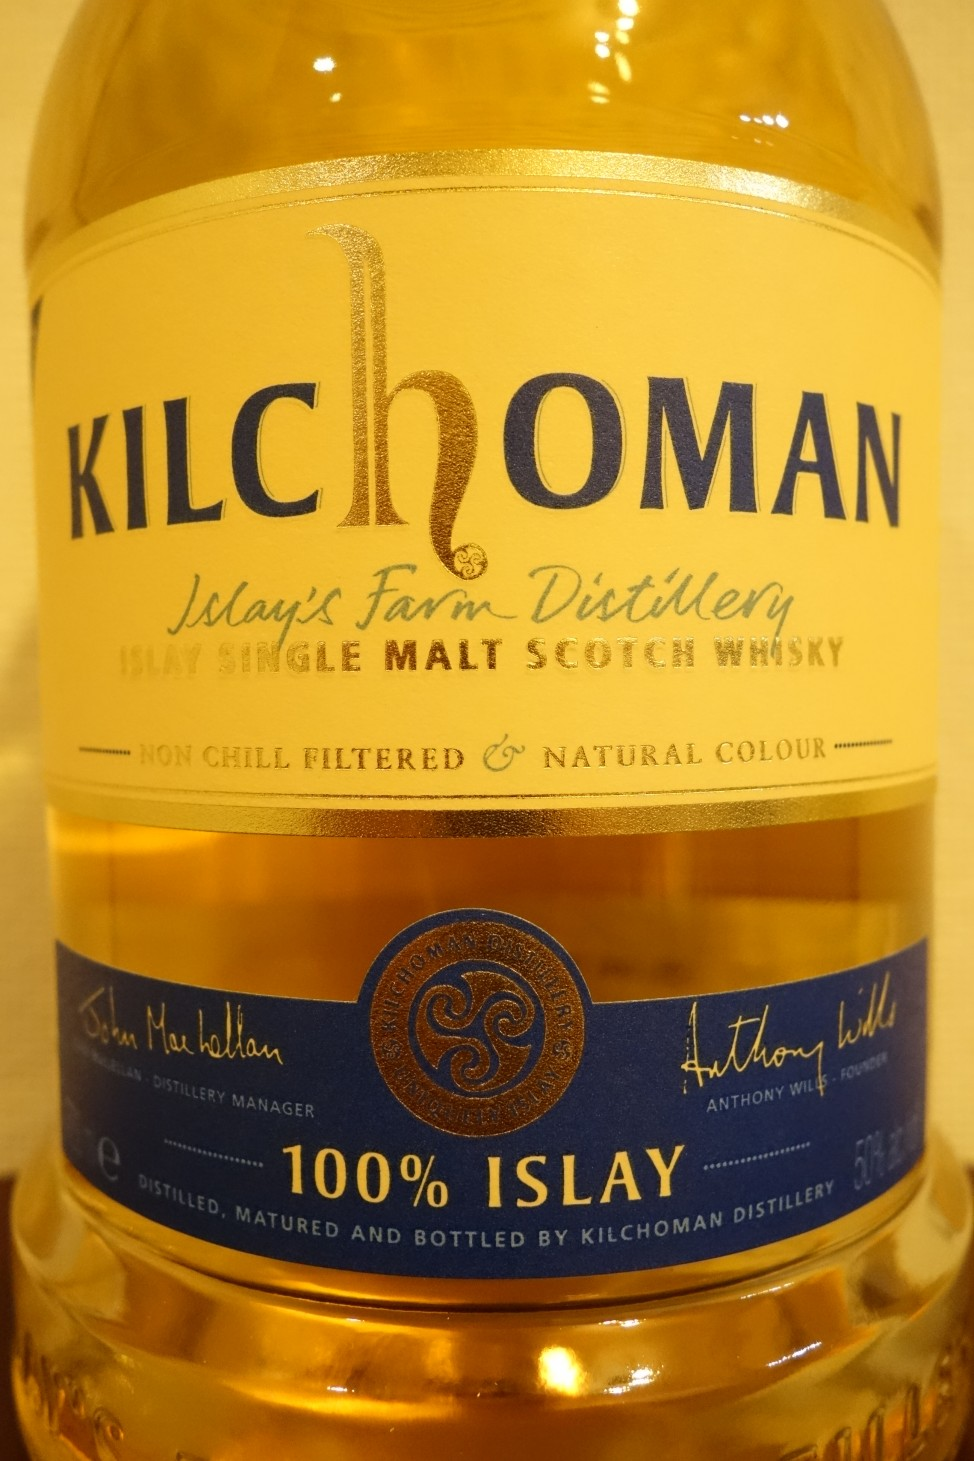 キルホーマン KILCHOMAN OB 100% ISLAY 2015 bottling 5TH EDITION (1)